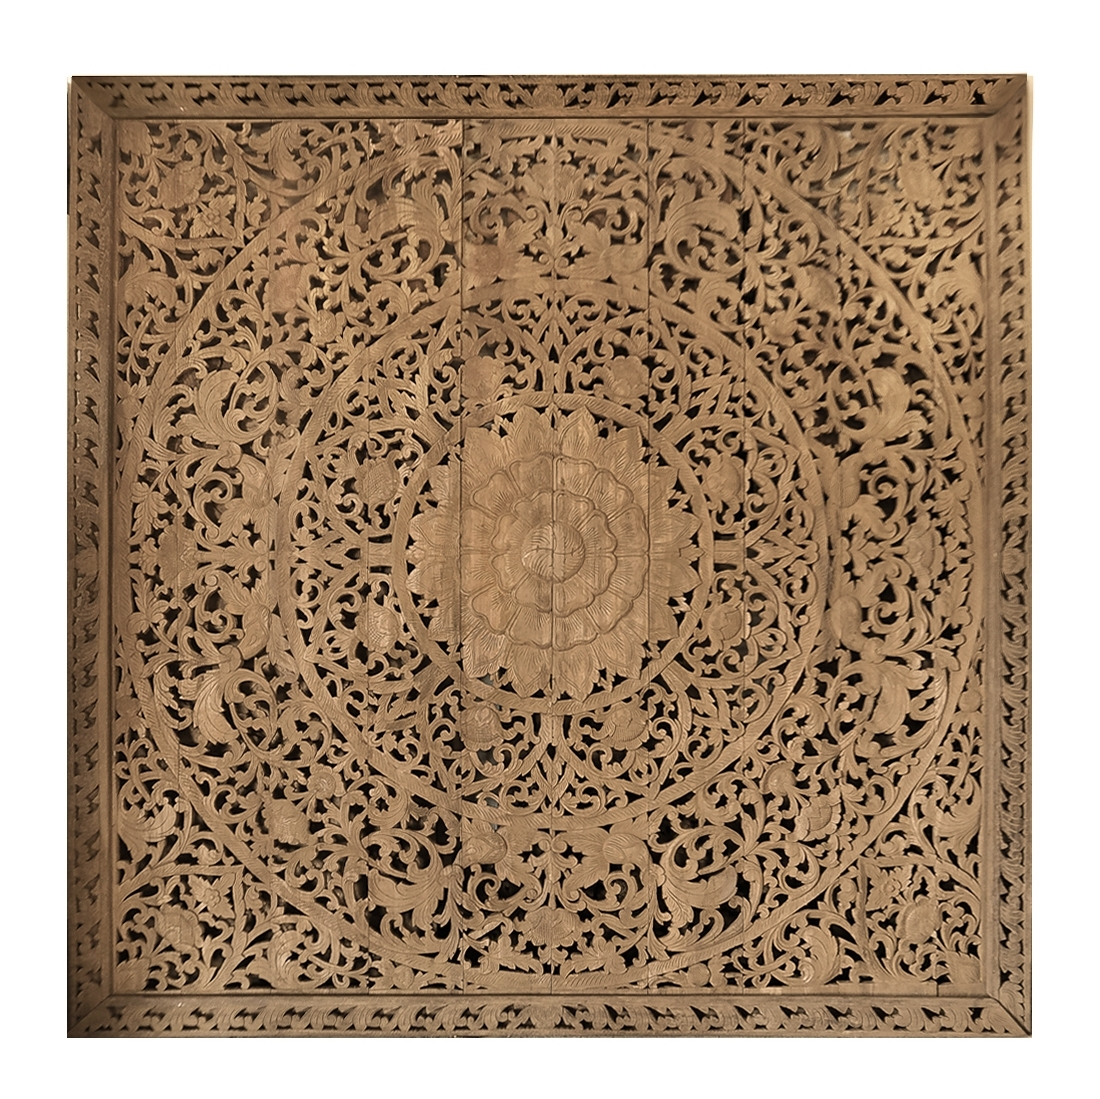 Buy Large Grand Carved Wooden Wall Art Or Ceiling Panel Online With Regard To Recent Wood Carved Wall Art (View 5 of 20)